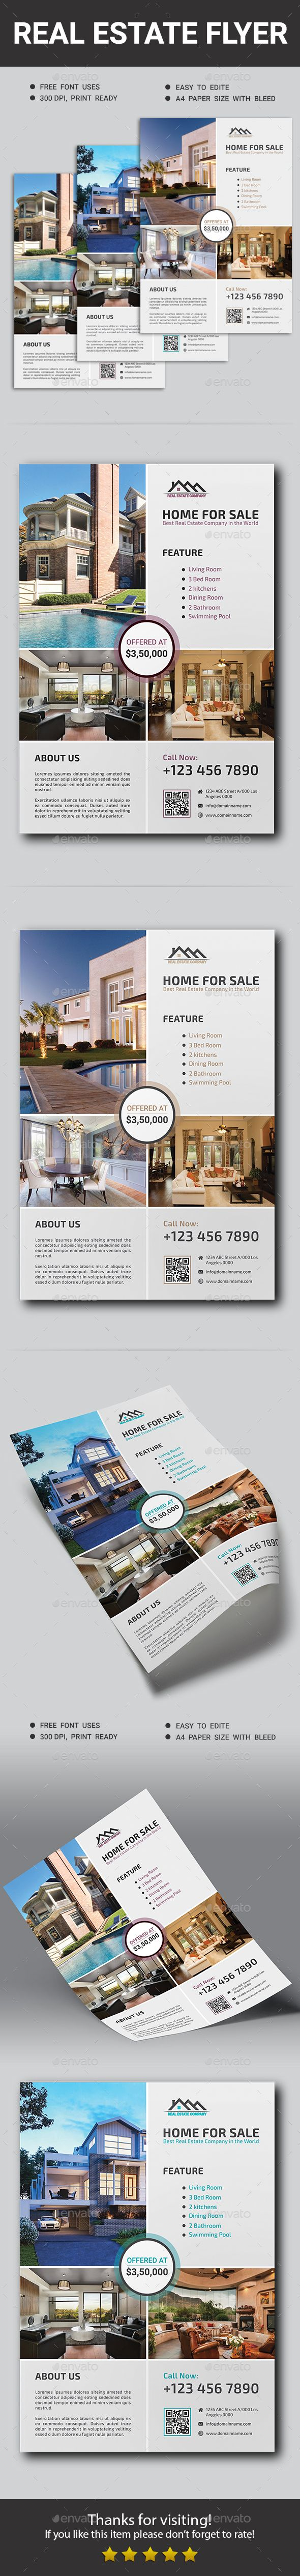 Real Estate Flyer by ResearchStudio This Real Estate Flyer Template is a great tool for promoting your Real Estate Business. Fully editable layers can perfectly cons